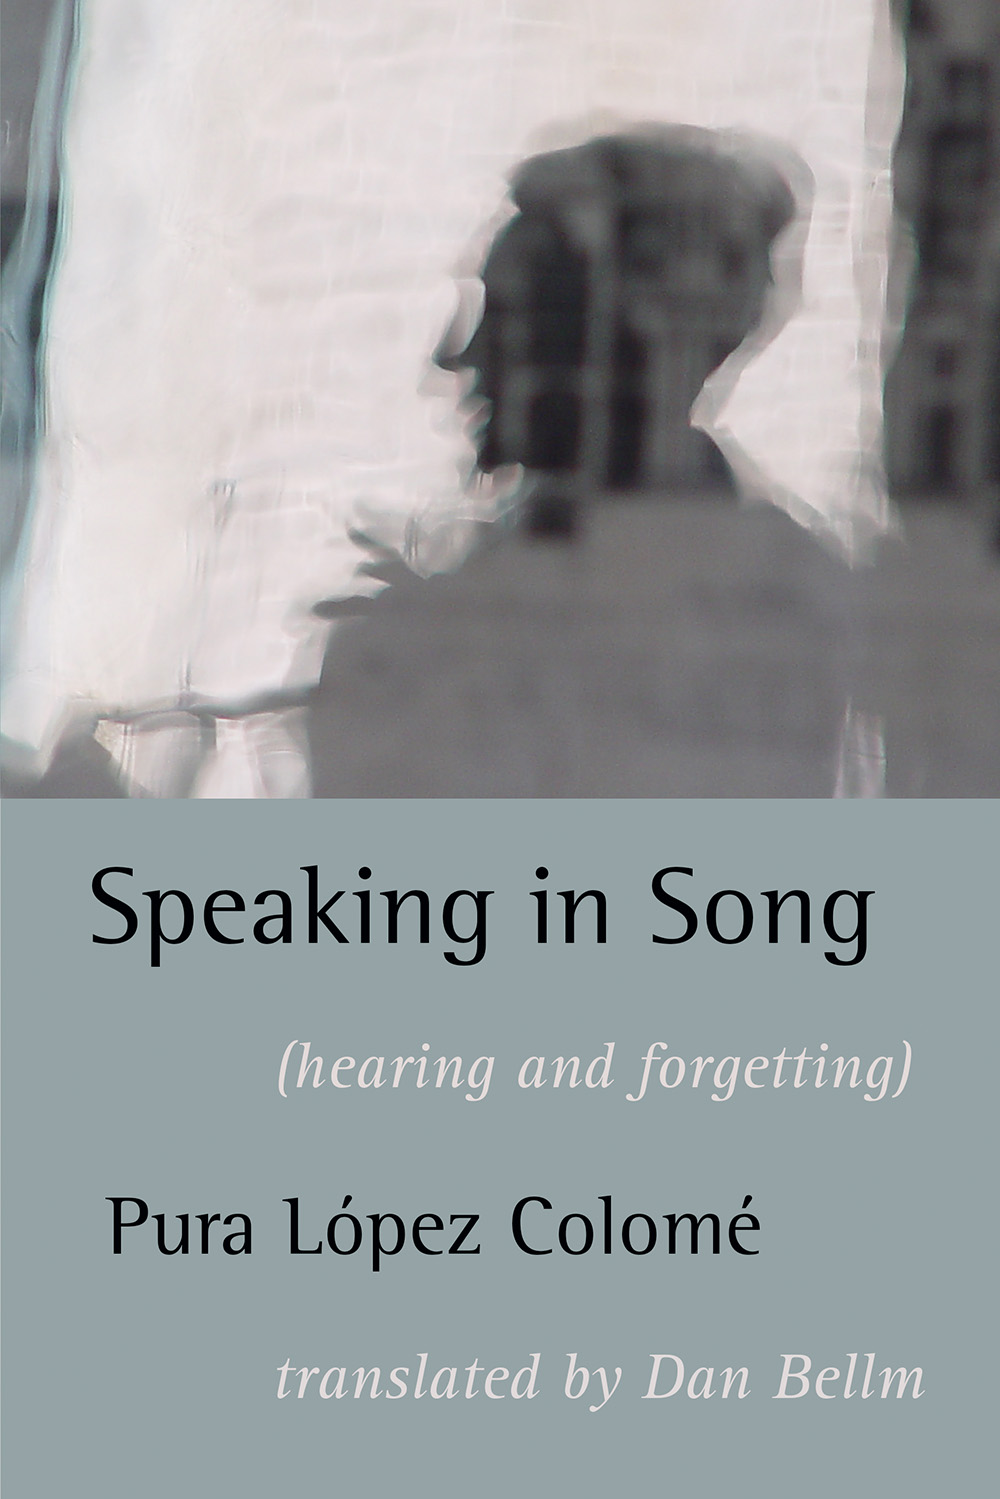 Speaking in Song